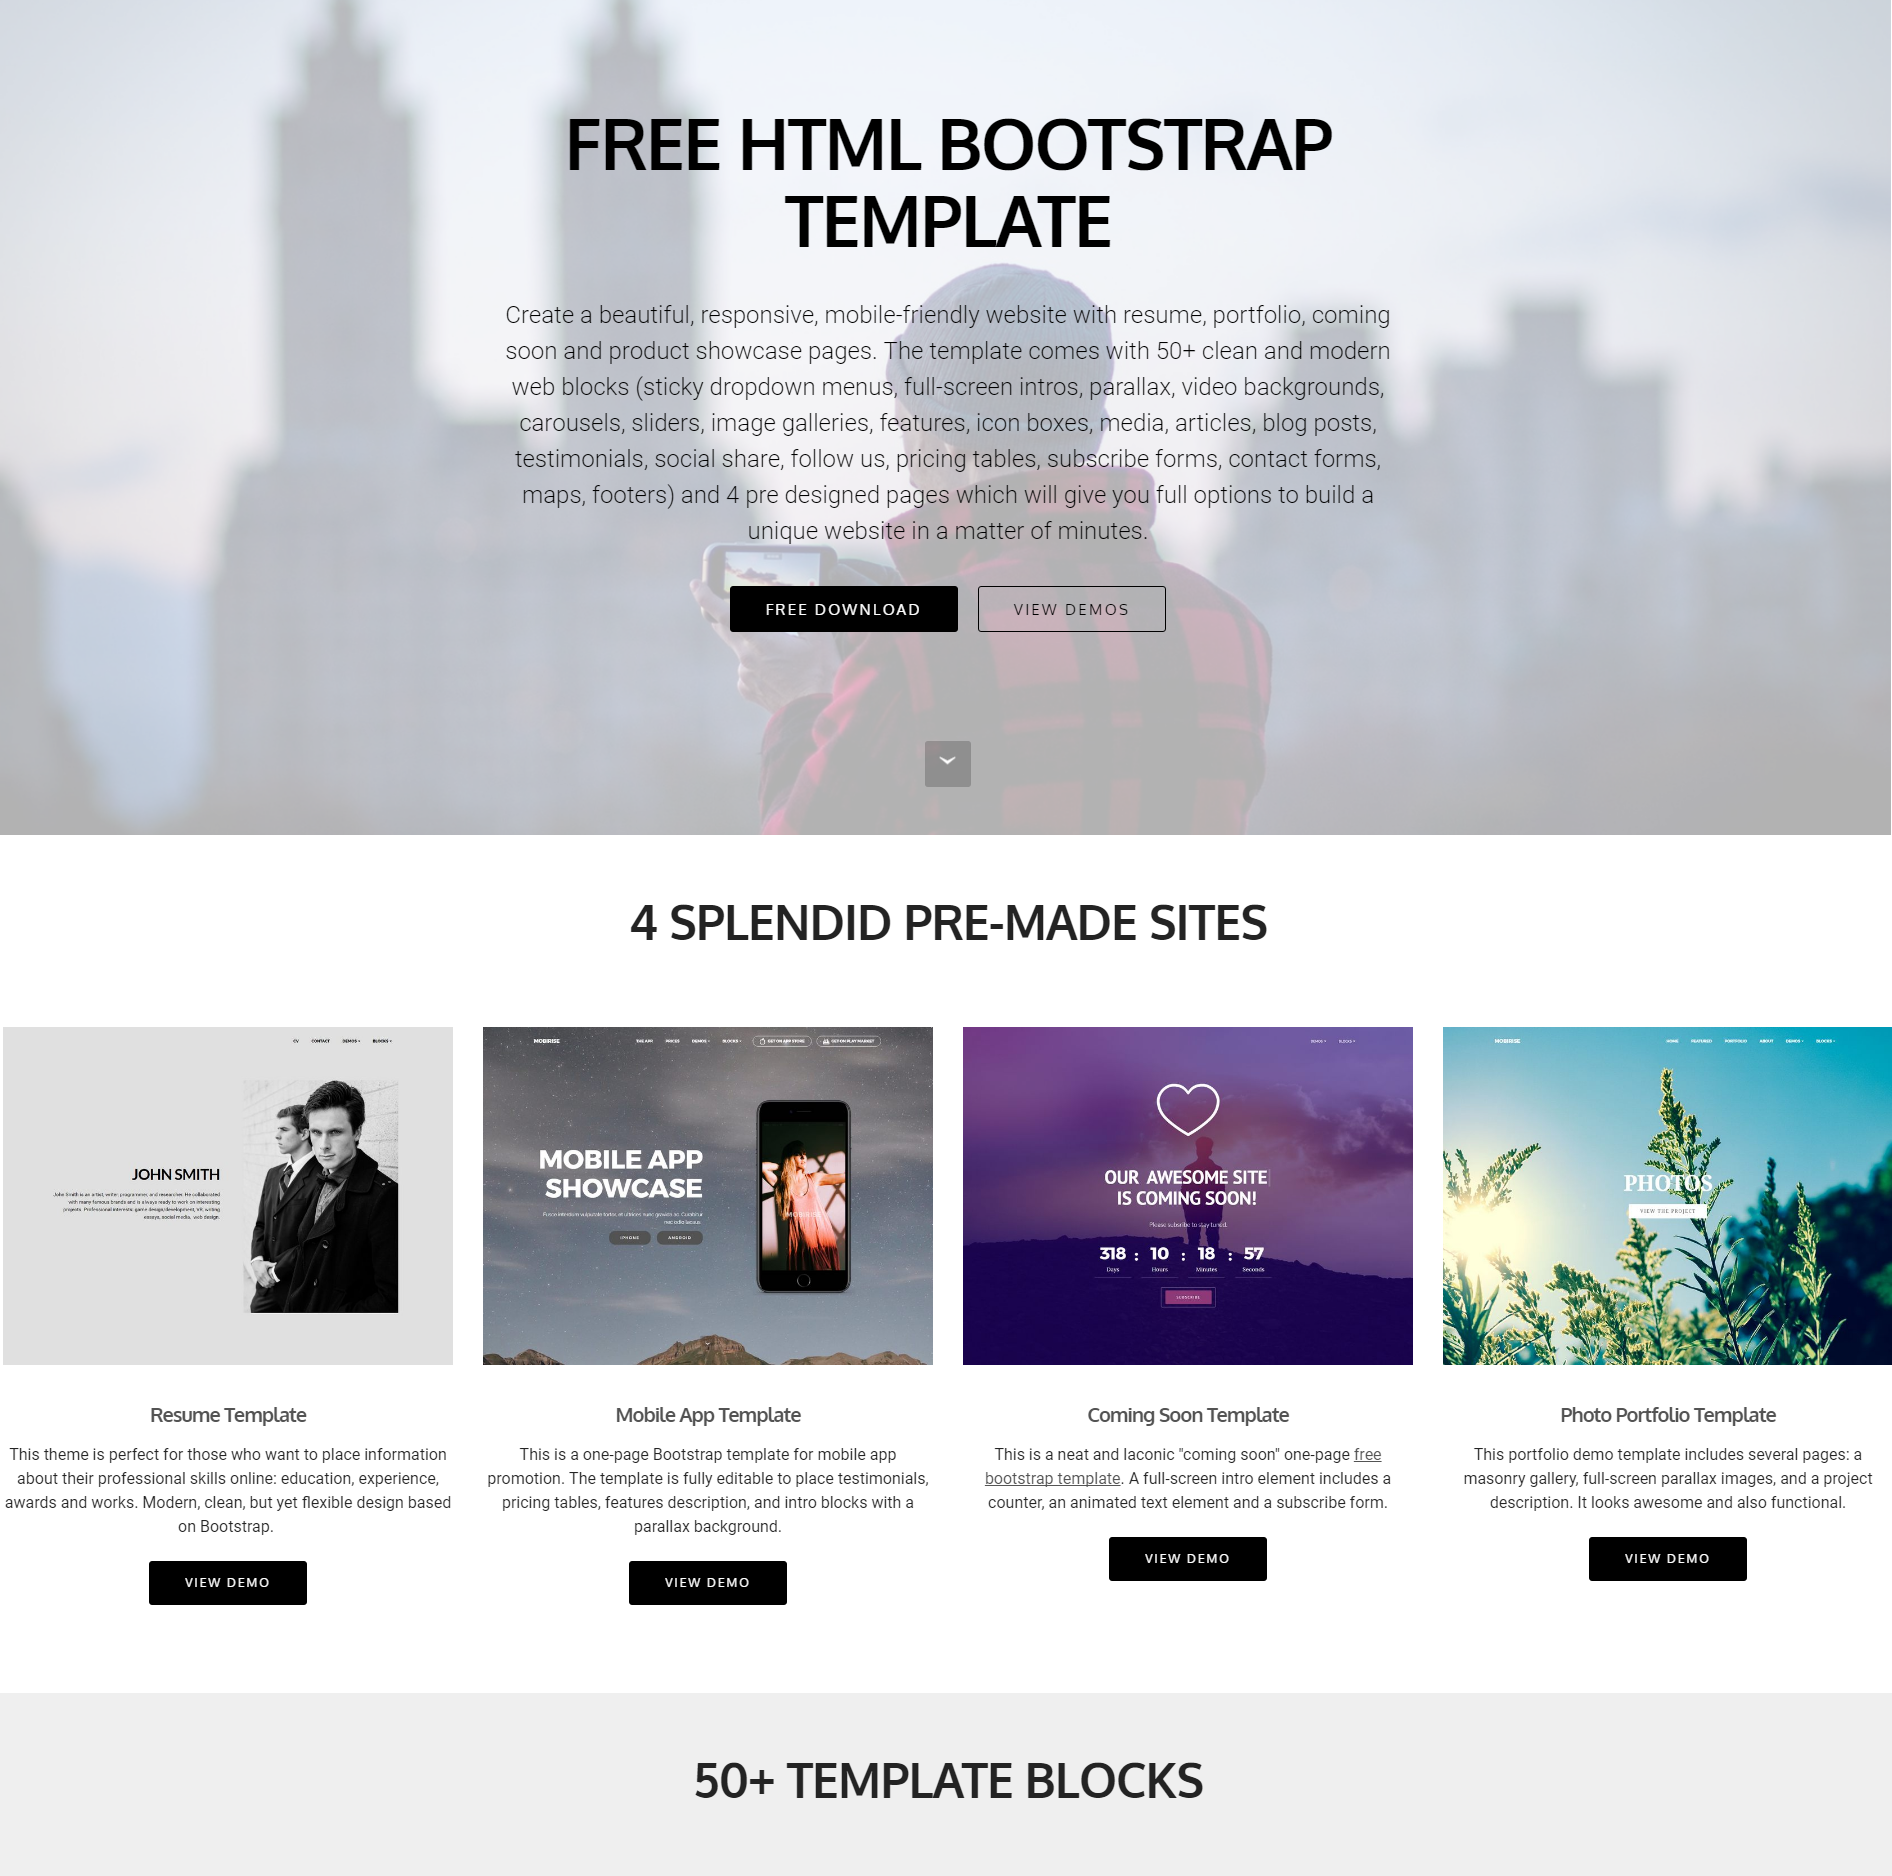 HTML5 Bootstrap 4 Blocks Templates